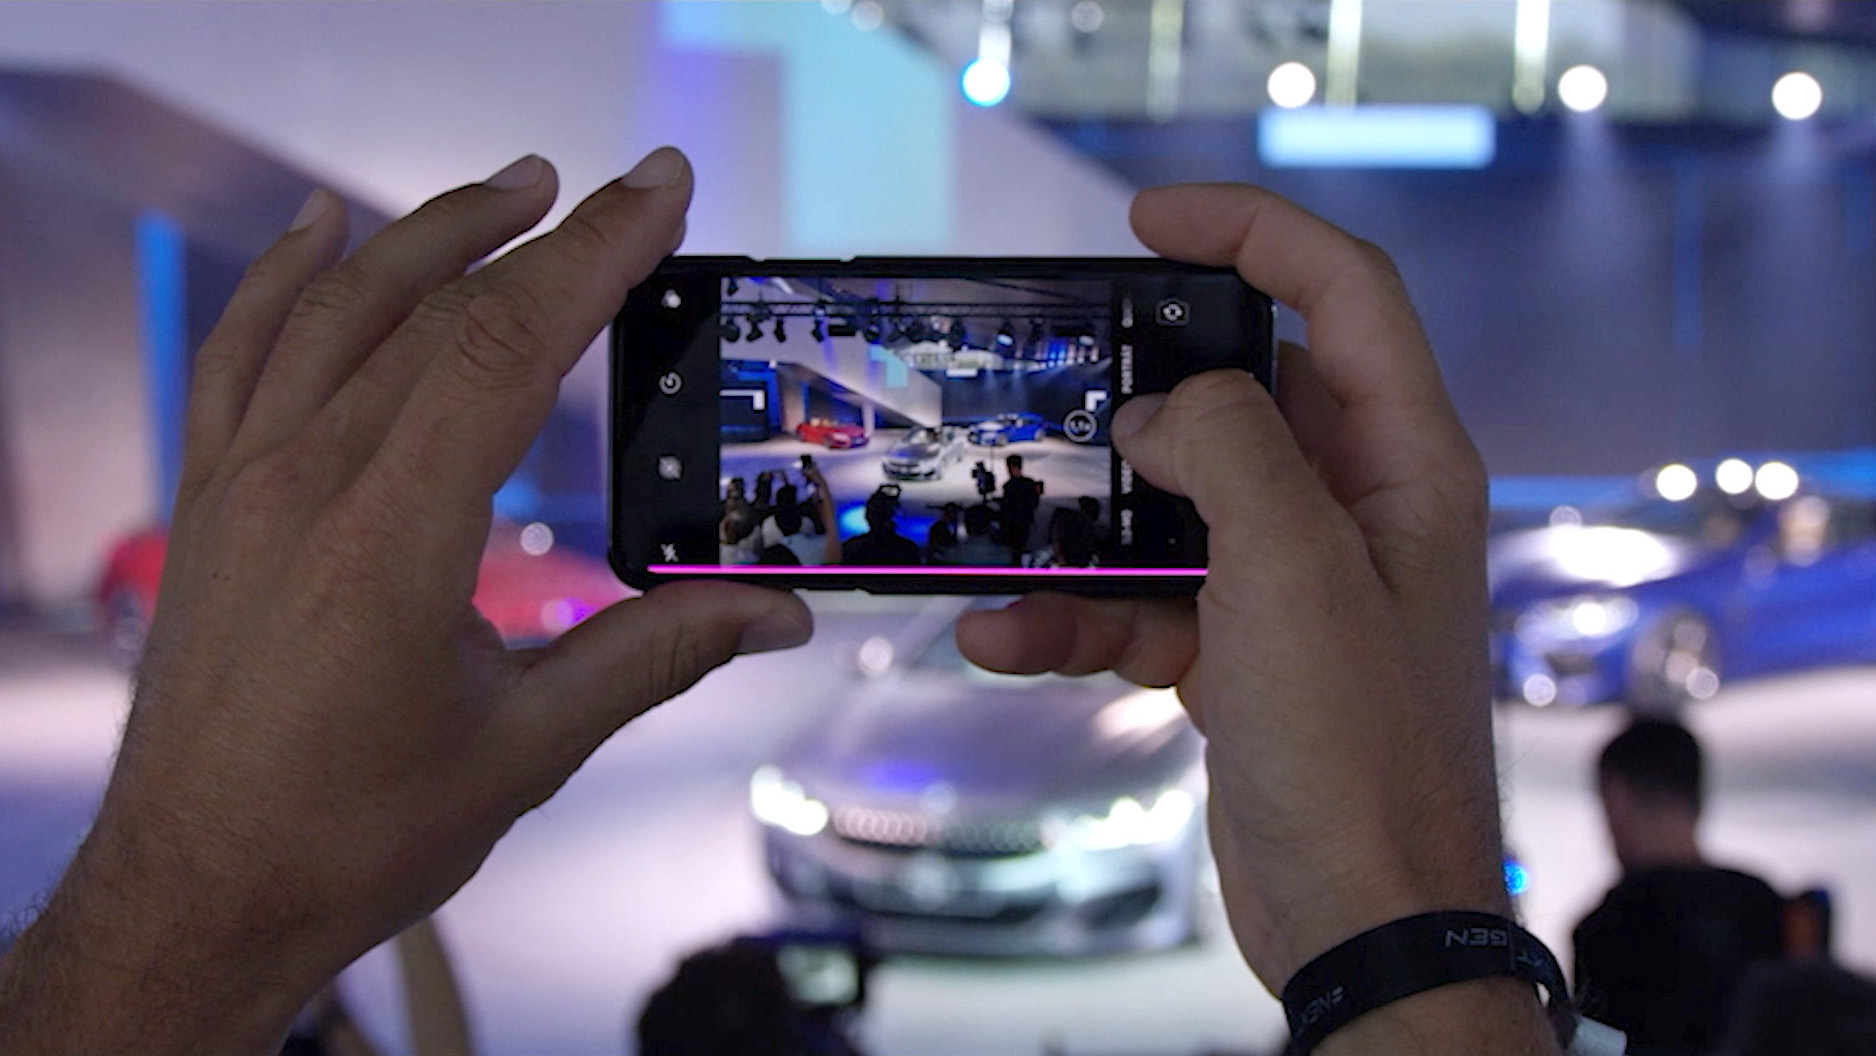 Taking a picture with a smartphone at a car tradeshow.